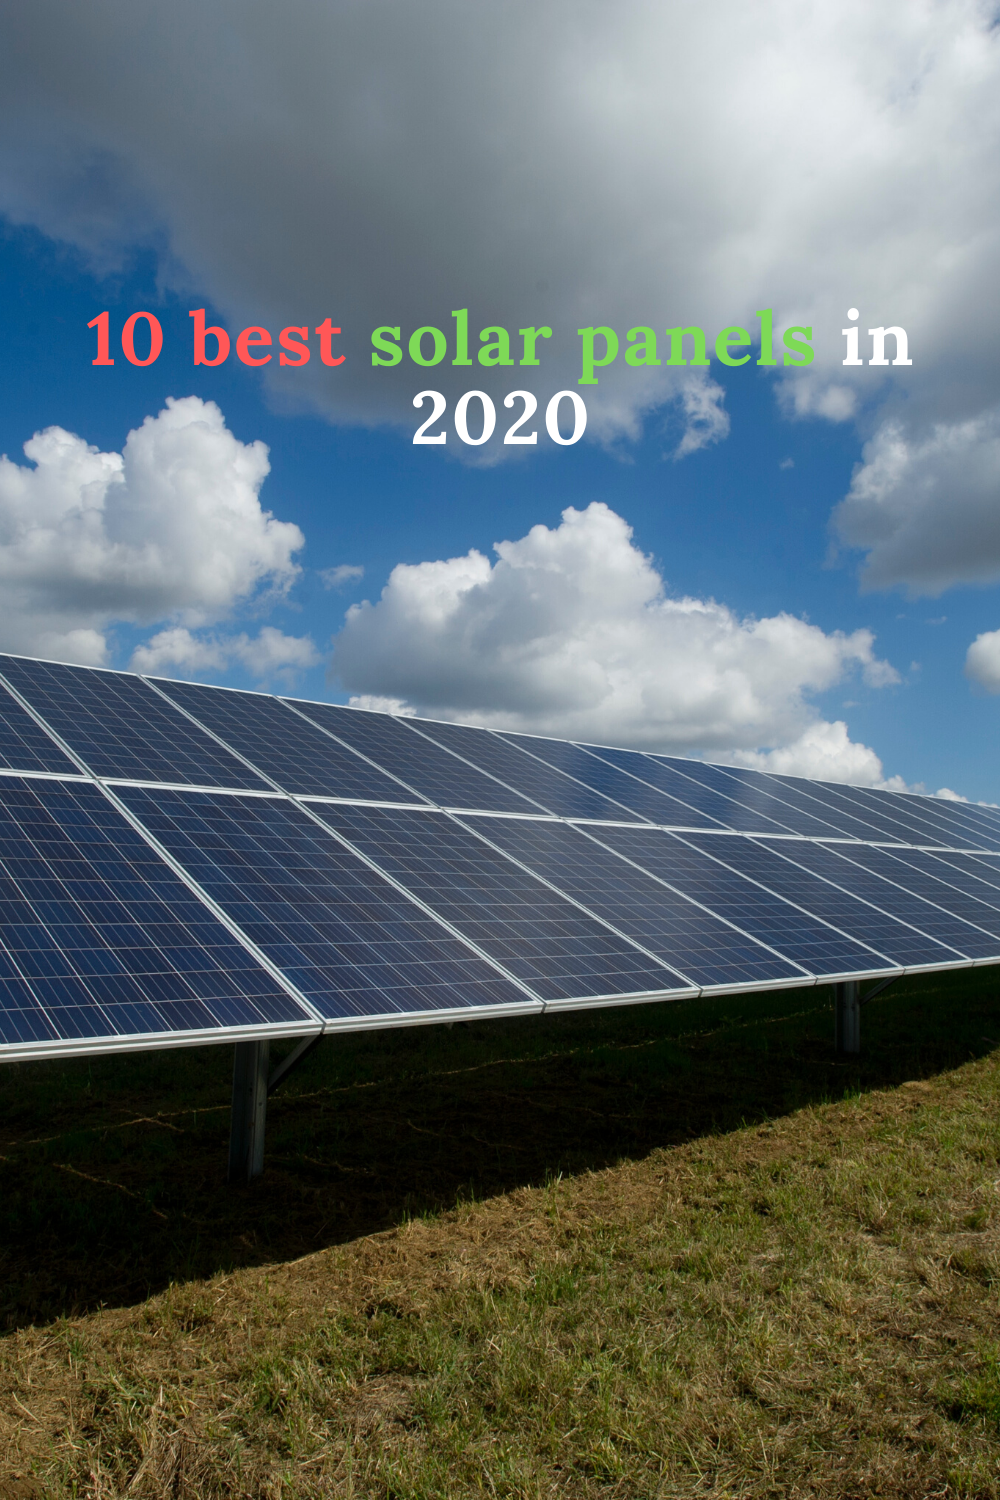 10 Best Solar Panels In 2020 In 2020 Best Solar Panels Solar Energy For Home Solar